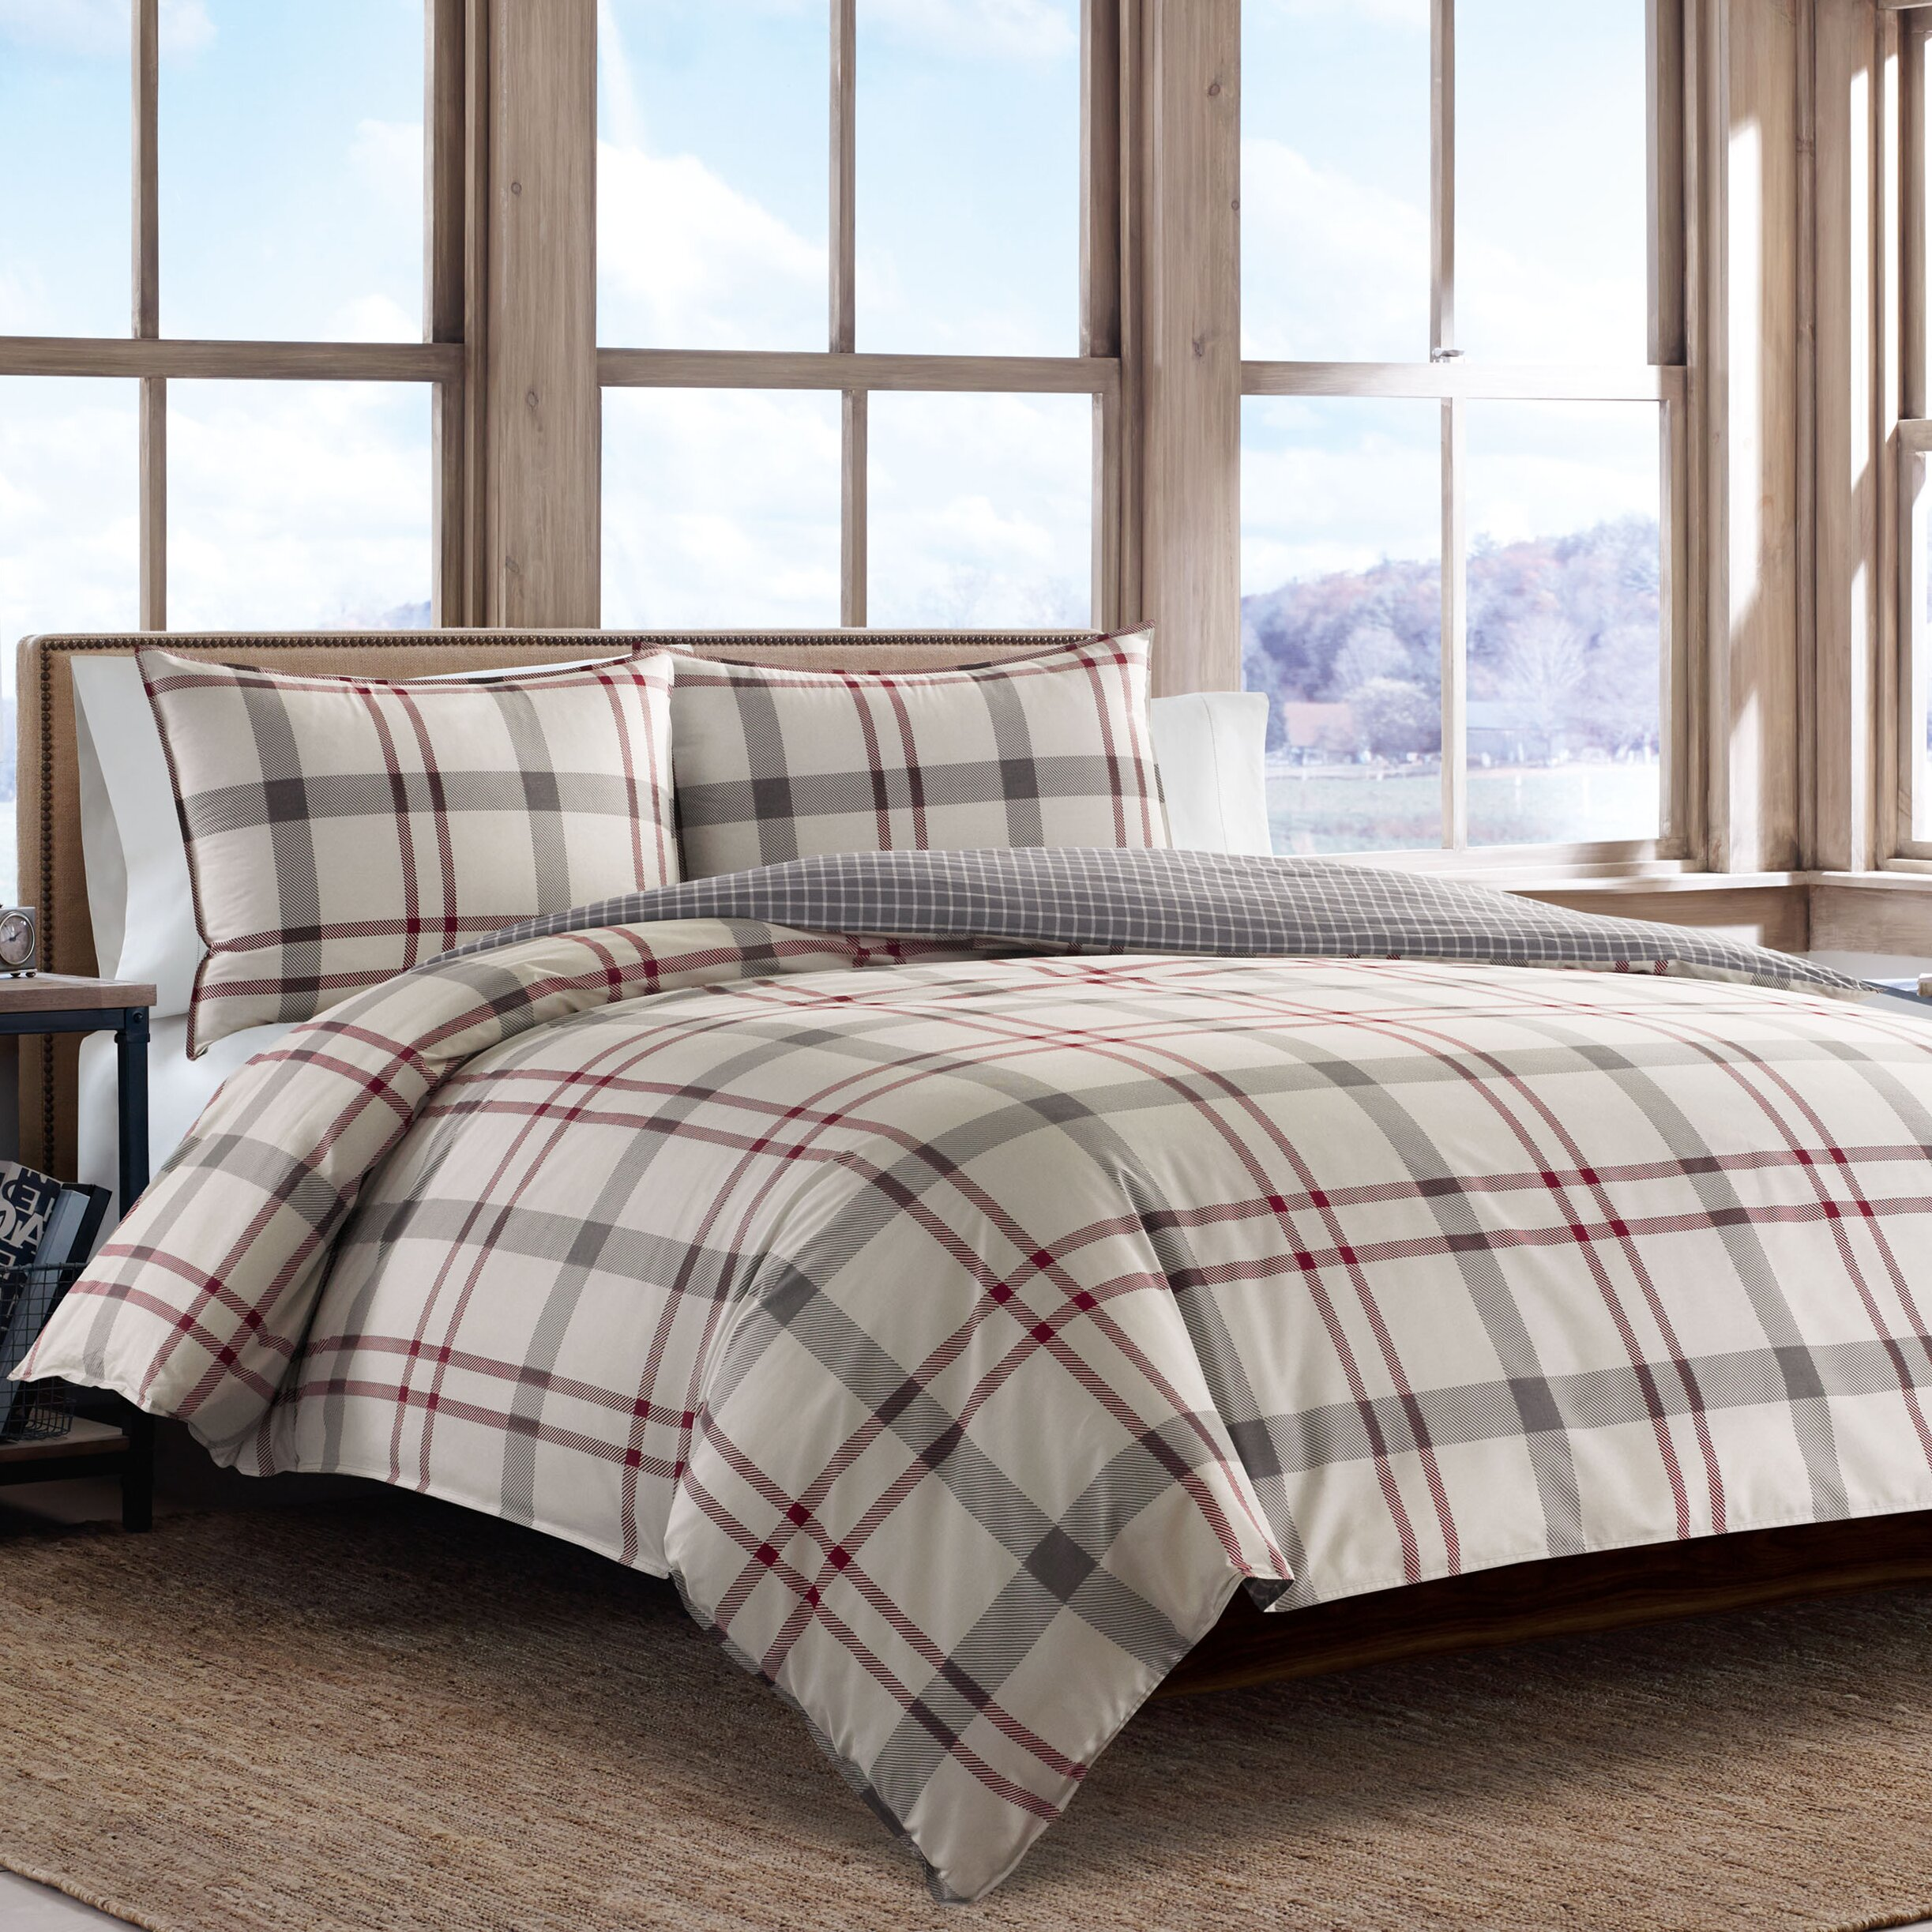 bedding down bauer alternative eddie sets pin classic less for bed comforter feature